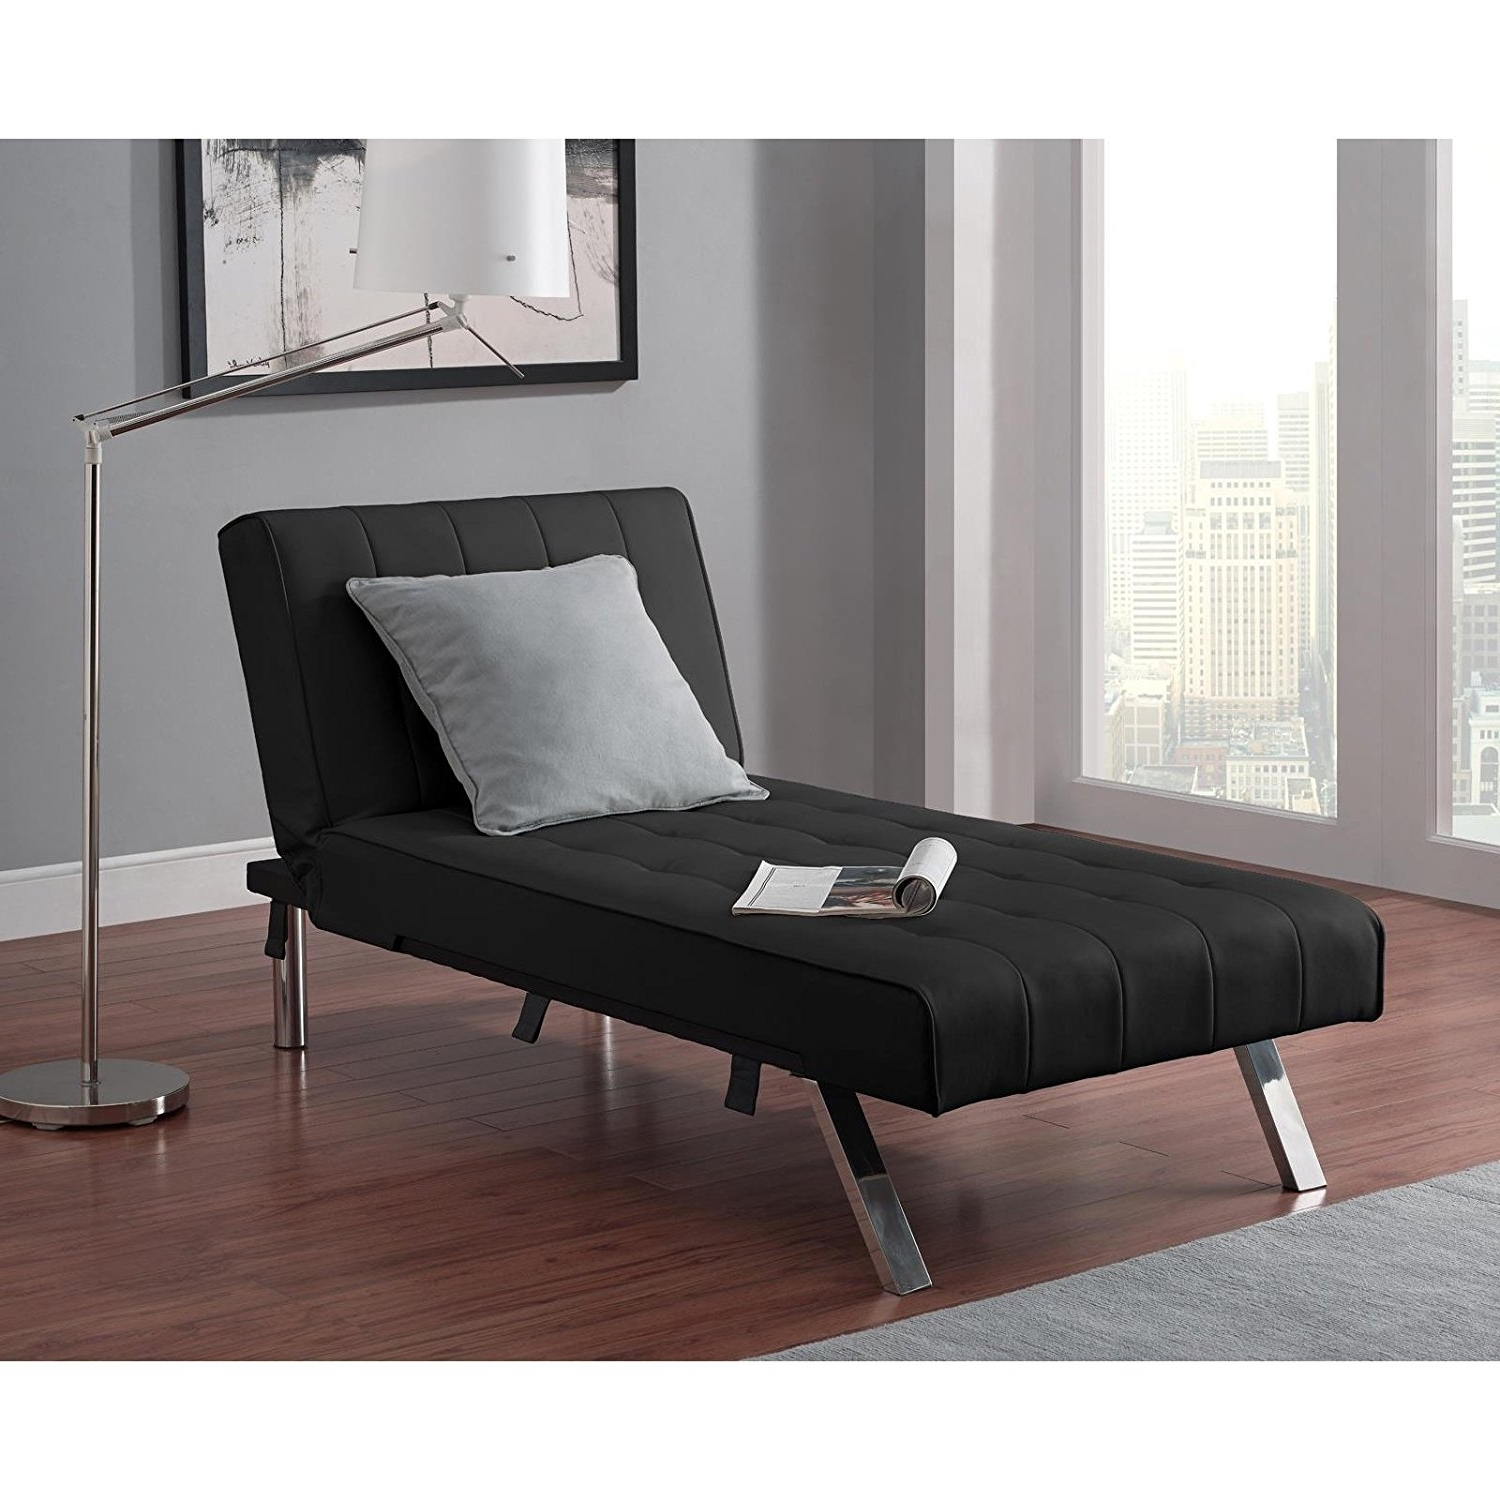 Chaise Lounge Beds Inside Best And Newest Amazon: Emily Futon With Chaise Lounger Super Bonus Set Black (View 15 of 15)